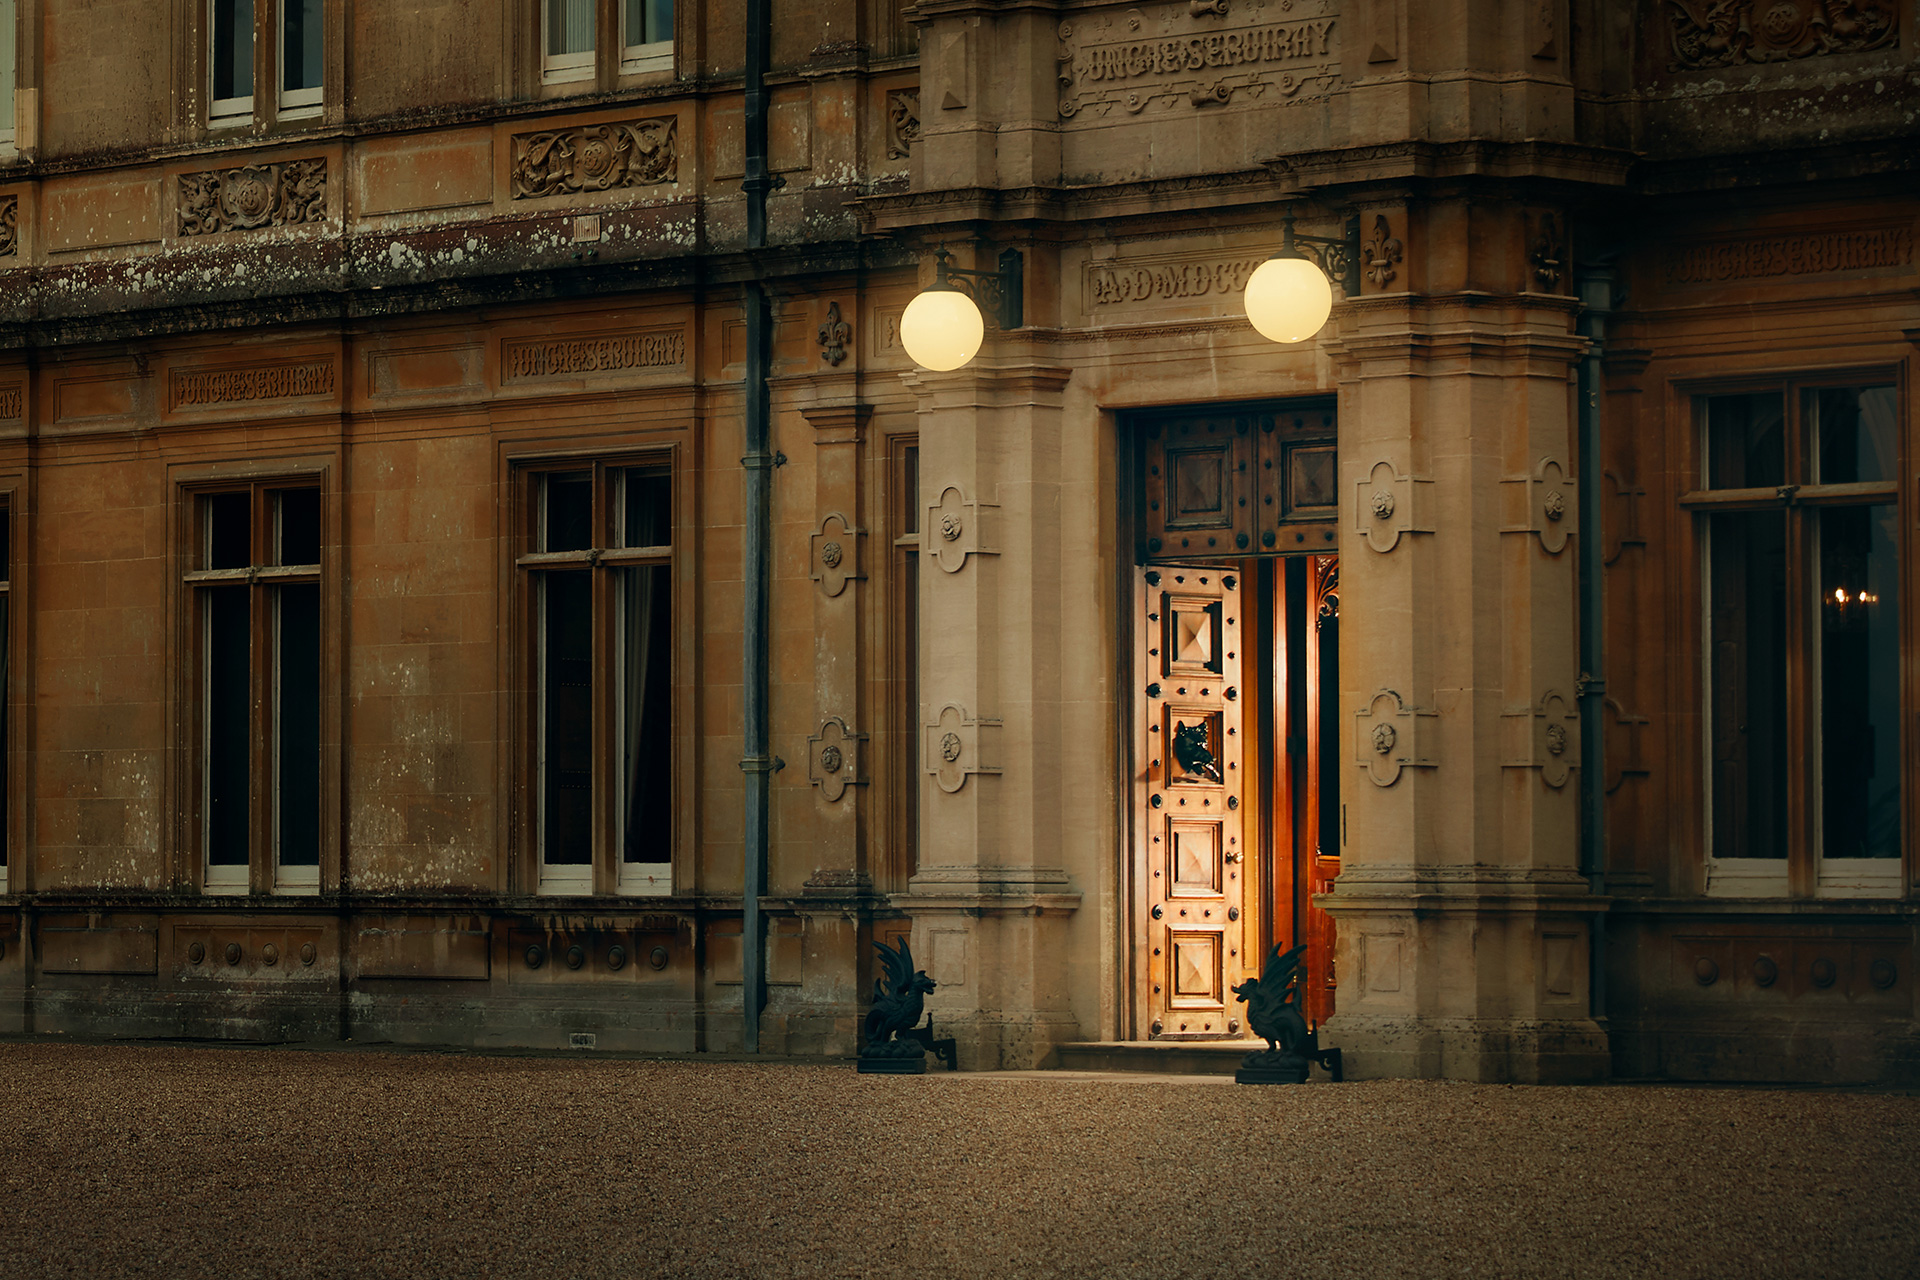 Downton Abbey Airbnb - Neomag.